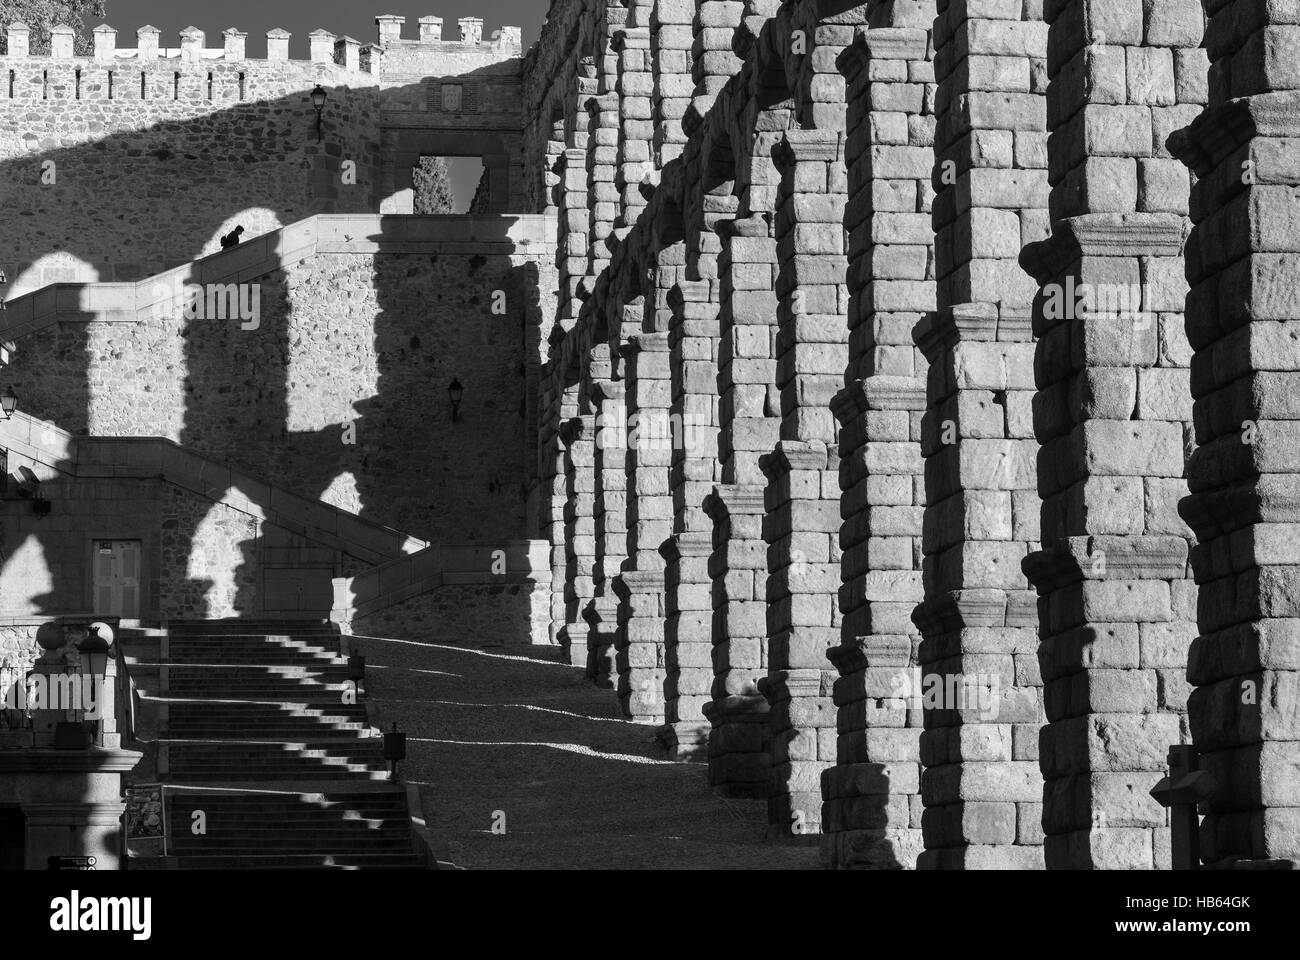 Late afternoon shadows created by Segovia's 1st century Roman Aqueduct in the Plaza Azuguejo, Segovia, Spain - Stock Image